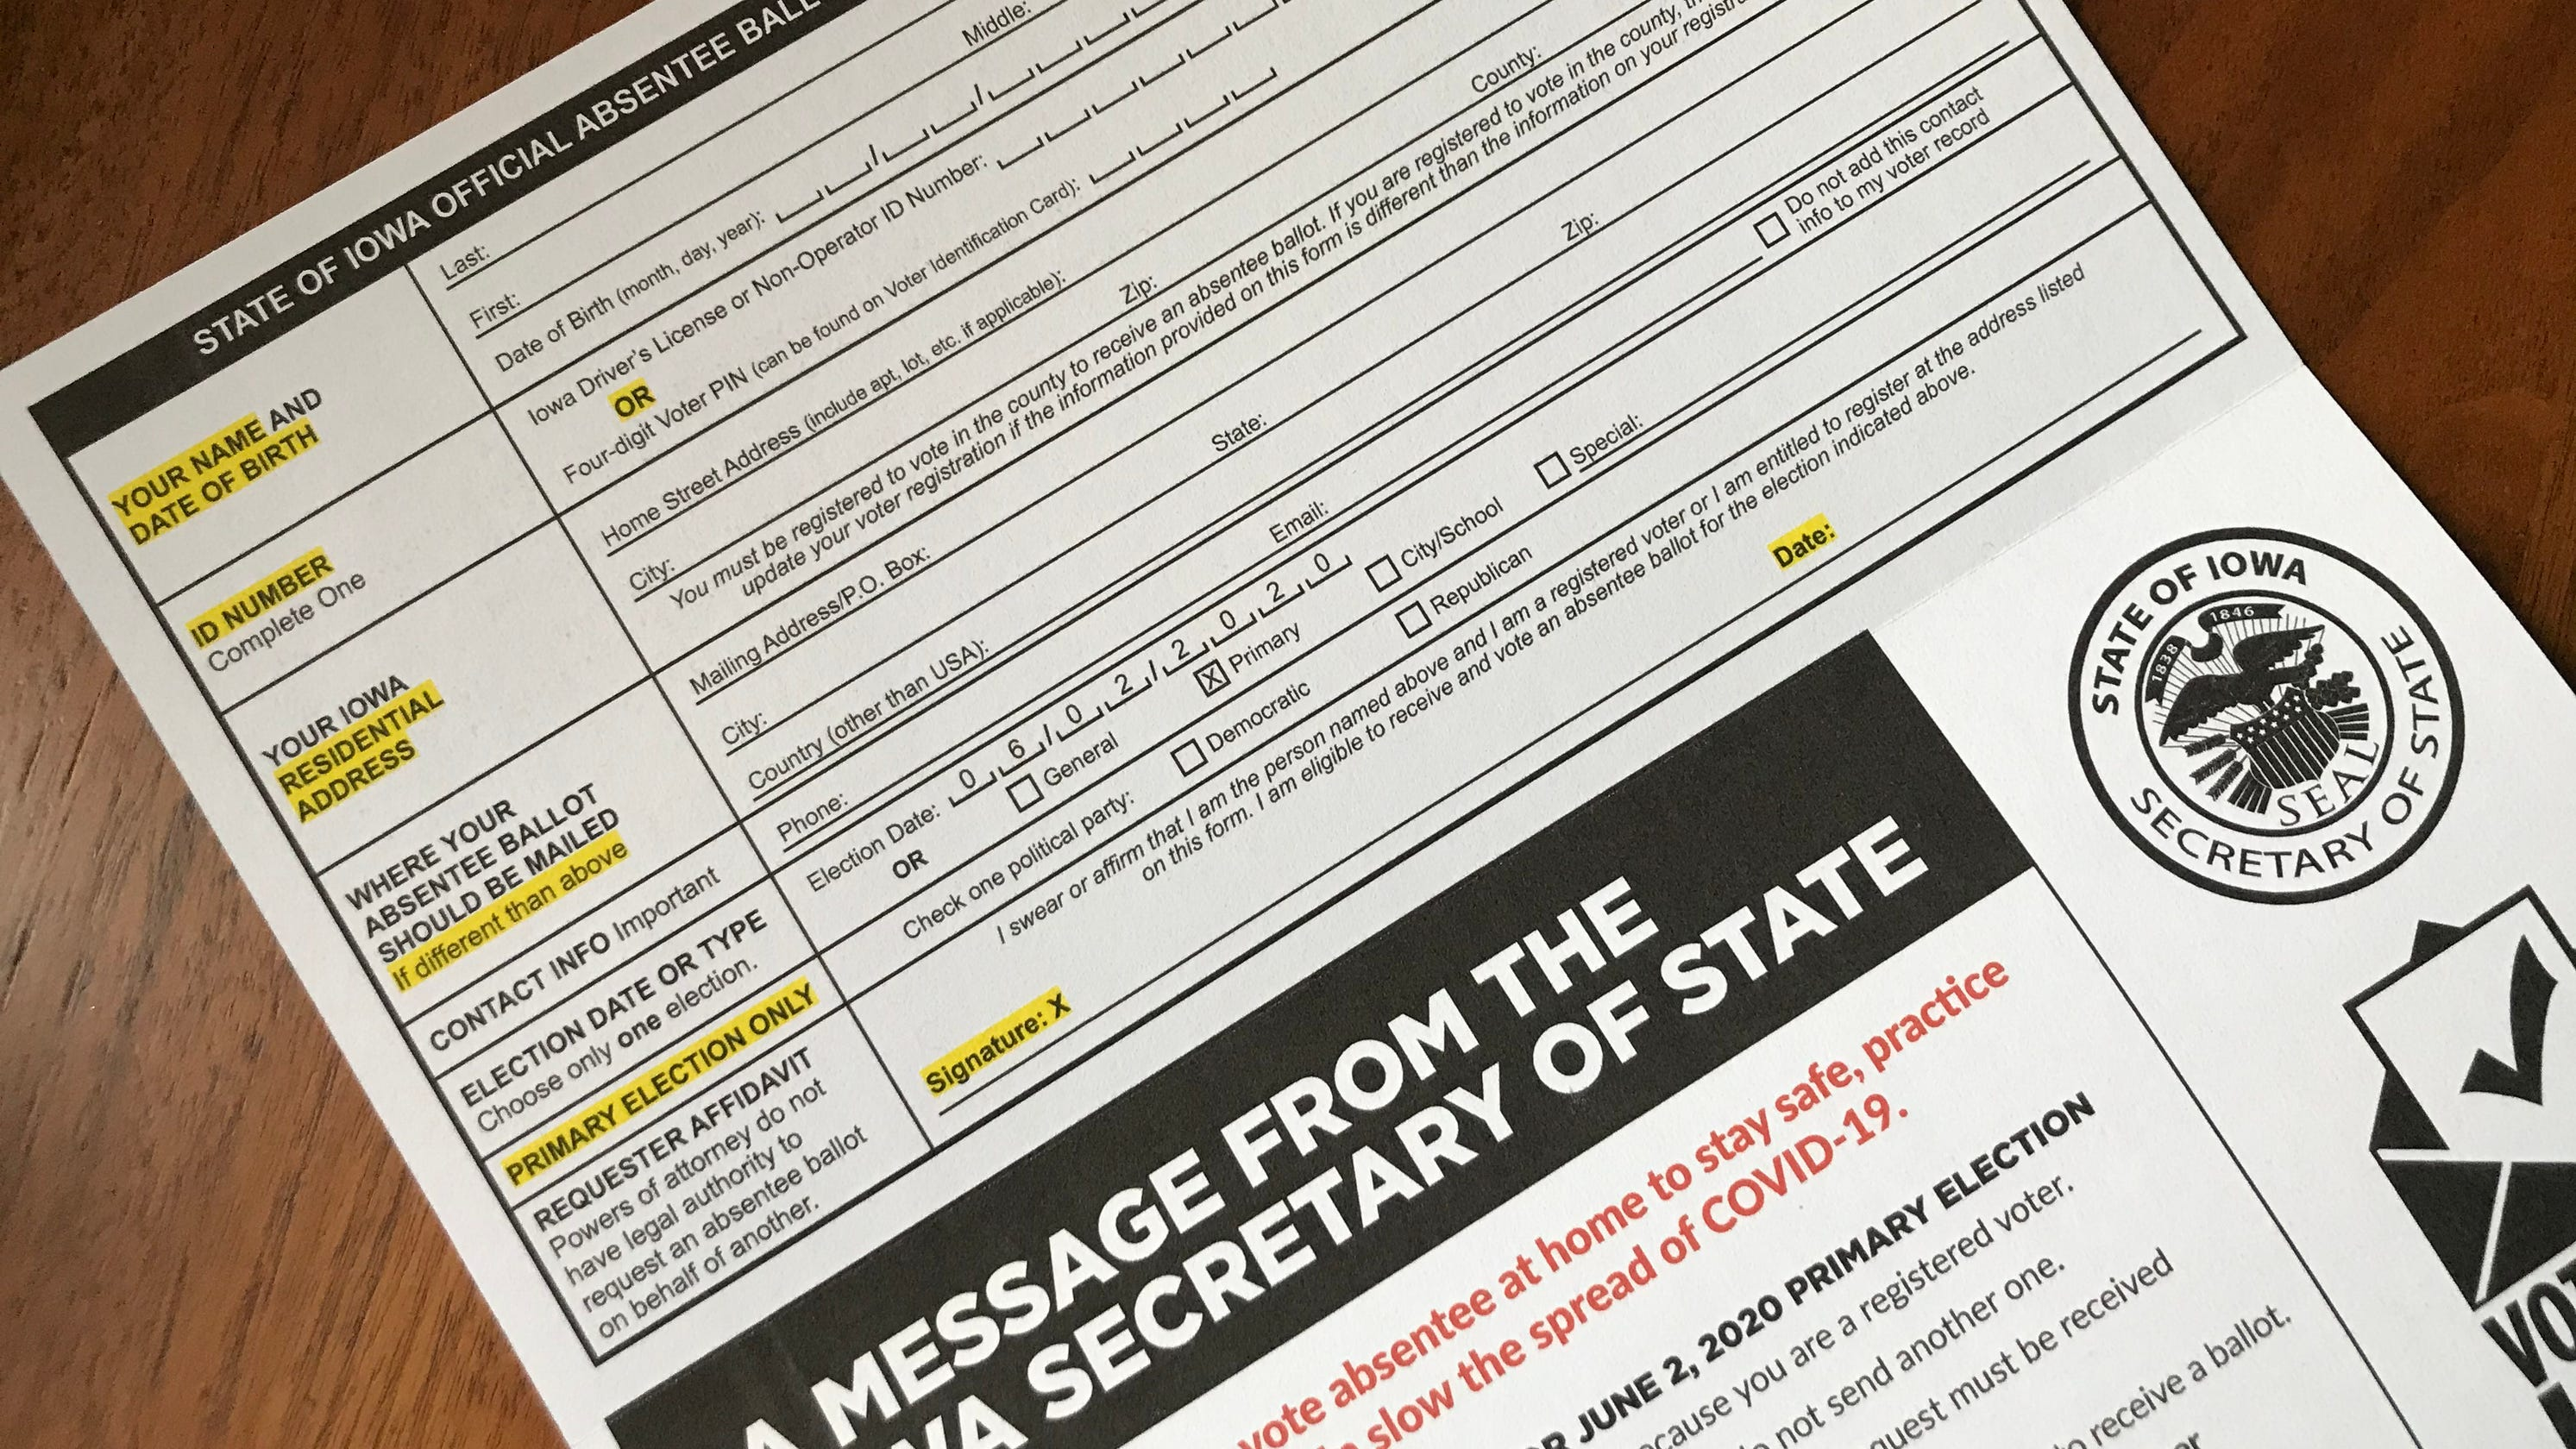 Expecting a surge of mail-in votes, Iowa will give counties a head-start on opening absentee ballots